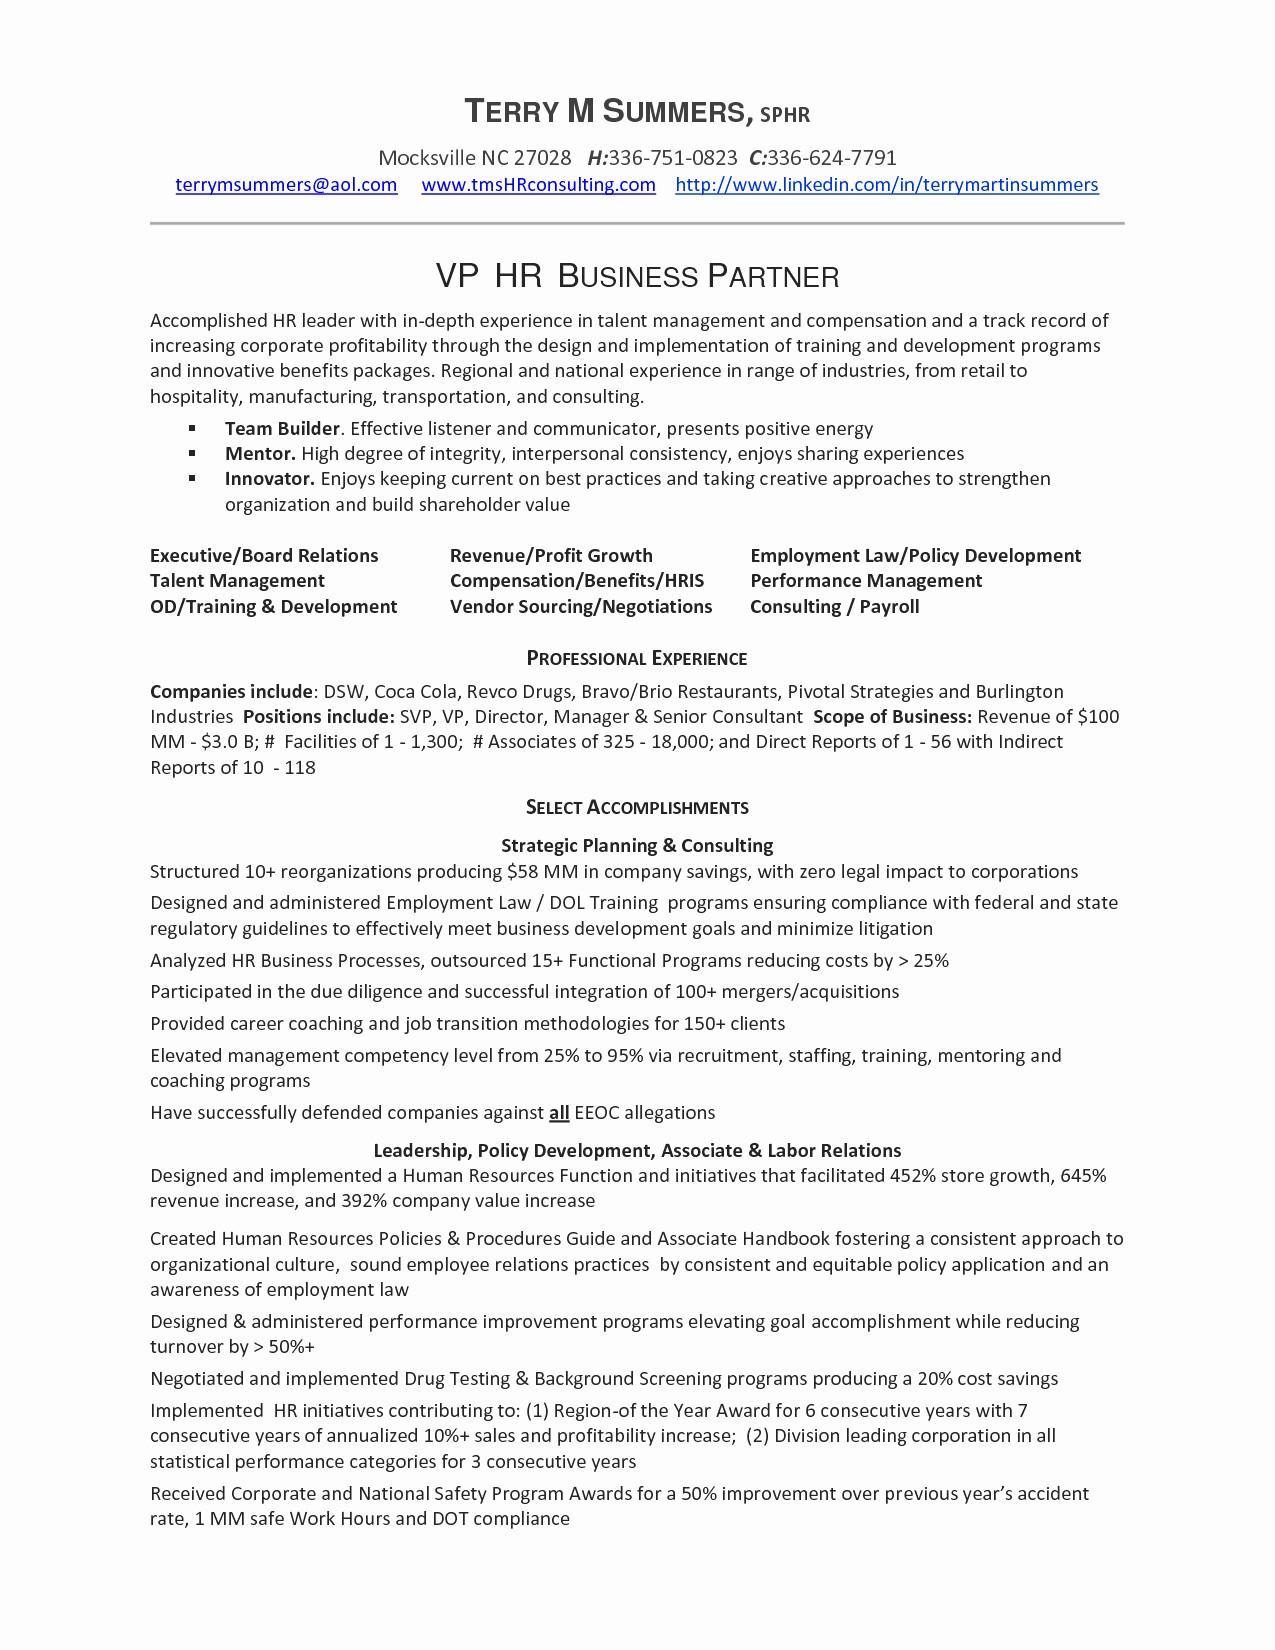 Patient Care Representative Resume - Patient Service Representative Resume Popular Member Service